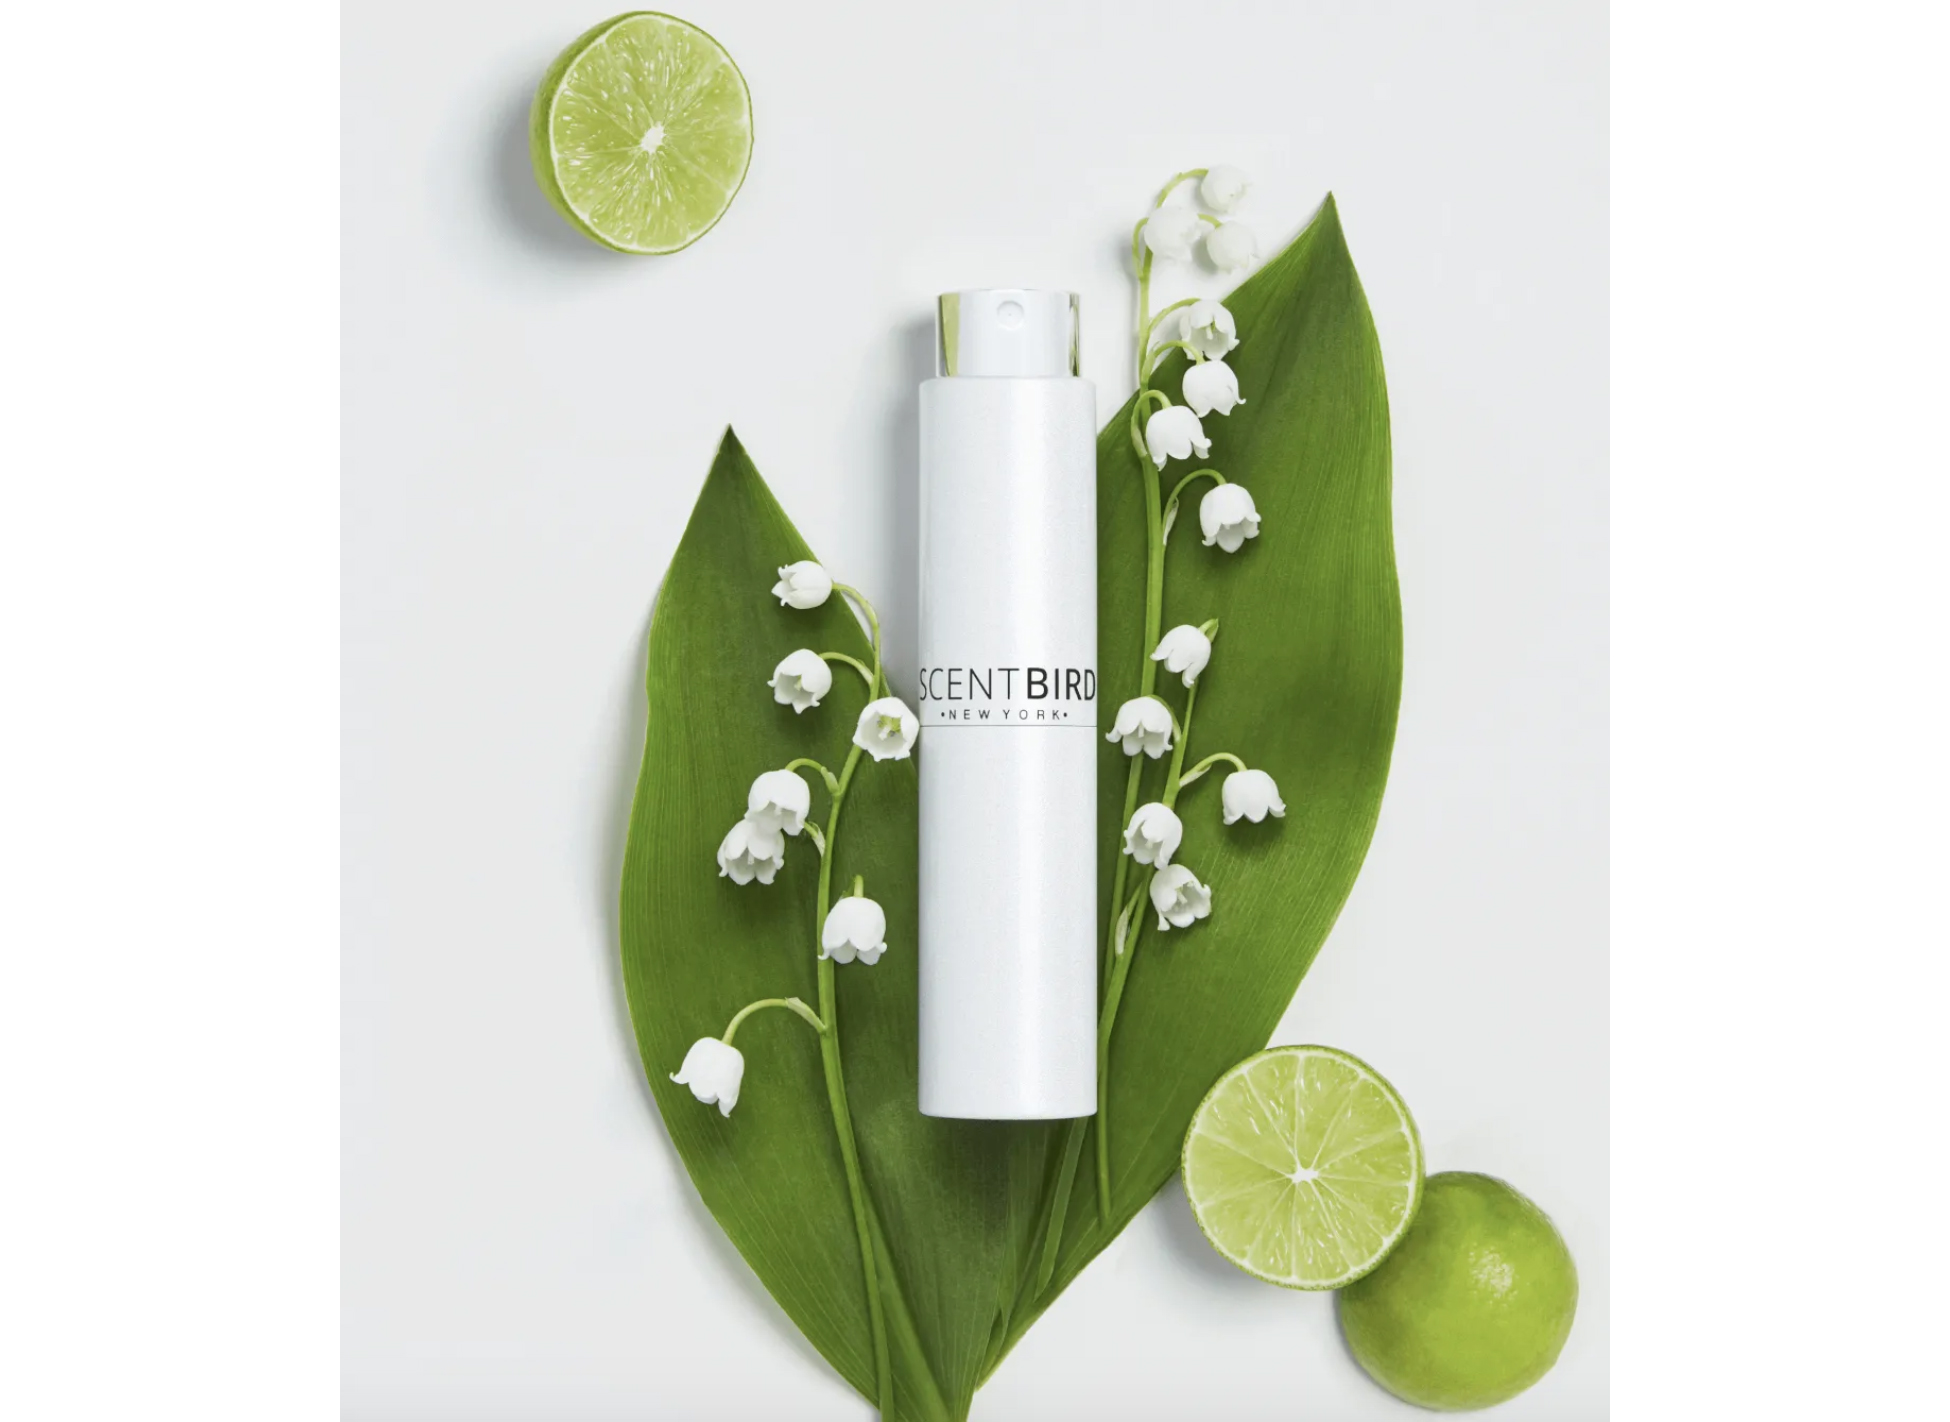 Scentbird spray on leaf and lime set up